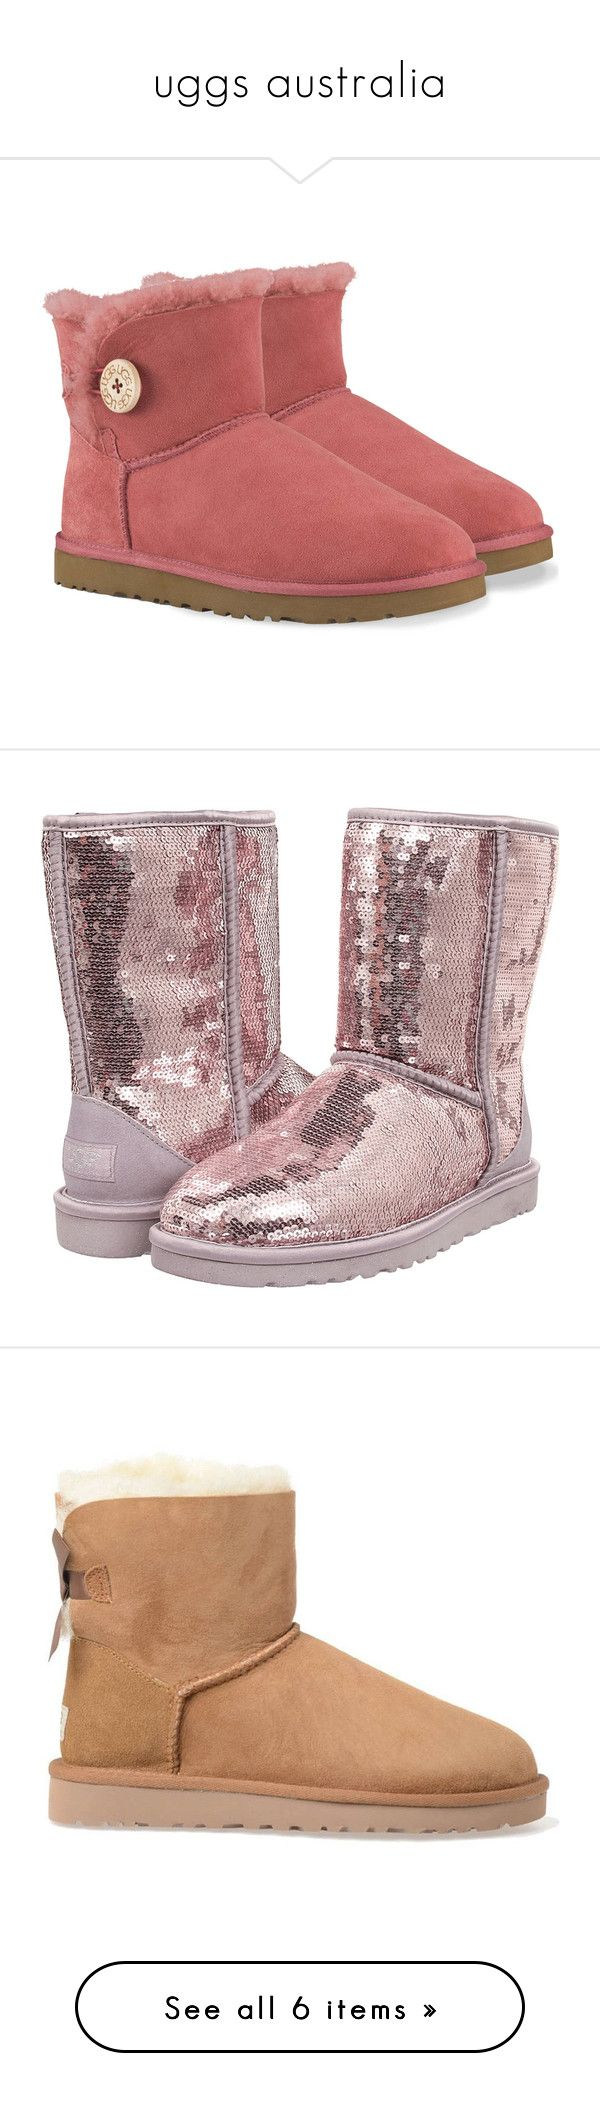 """""""uggs australia"""" by physcoslut ❤ liked on Polyvore featuring shoes, boots, ankle booties, uggs, verde, short fur boots, ankle boots, ugg australia boots, ugg australia and green hunter boots"""